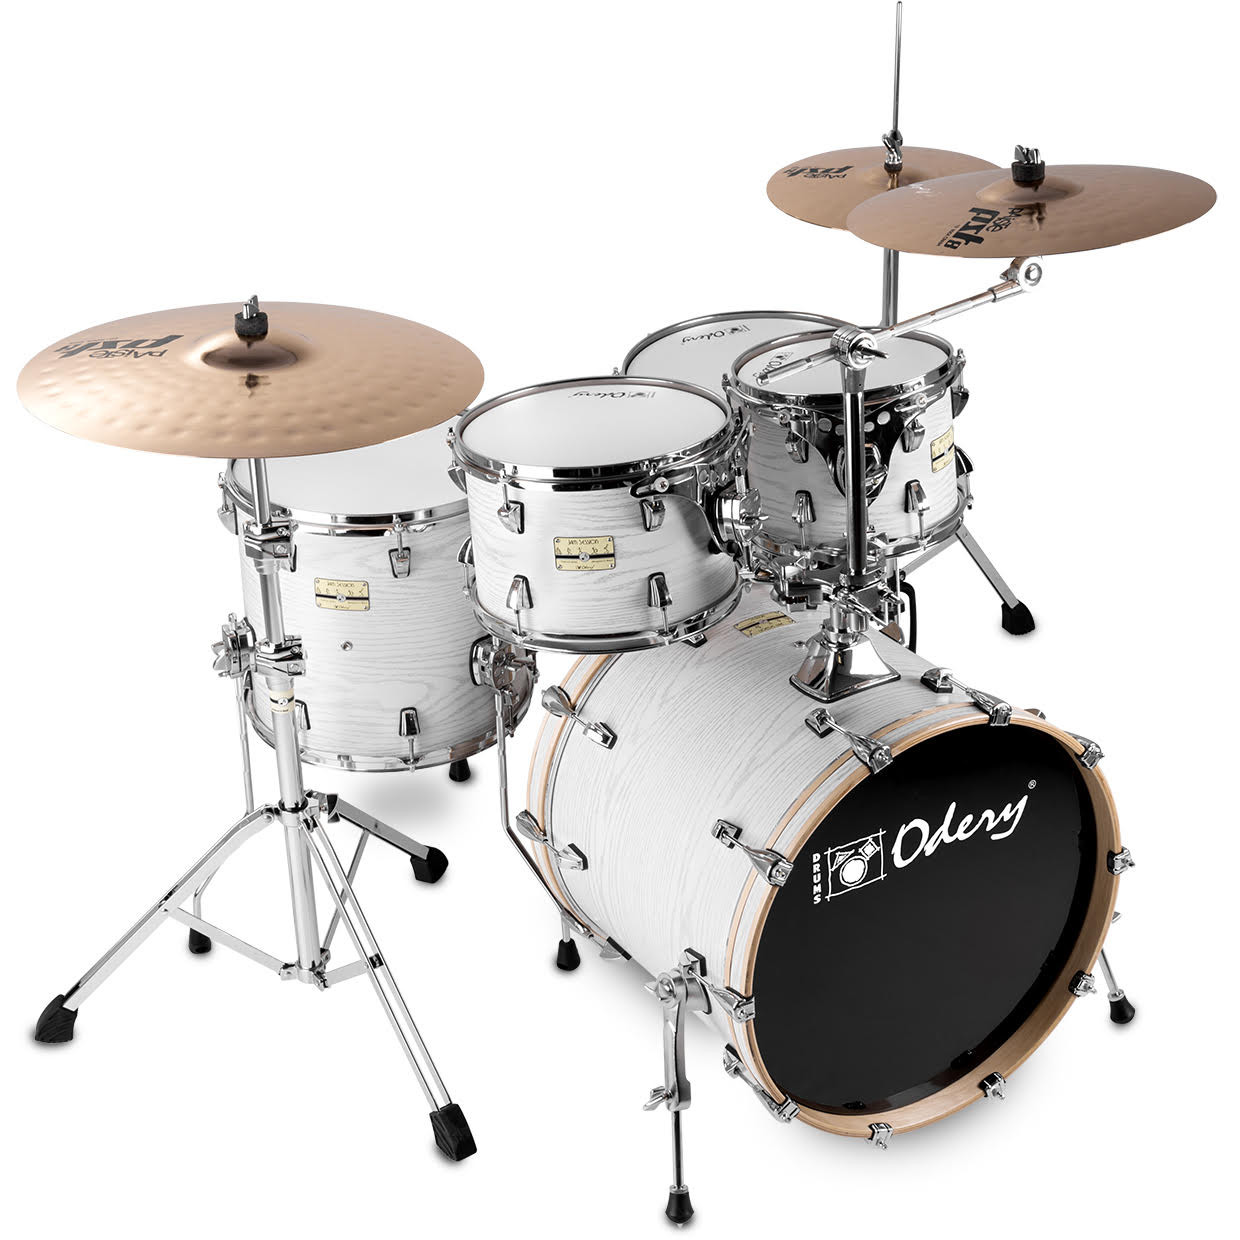 Odery FL180 Jam Session White Ash 5 piece shell set with hardware